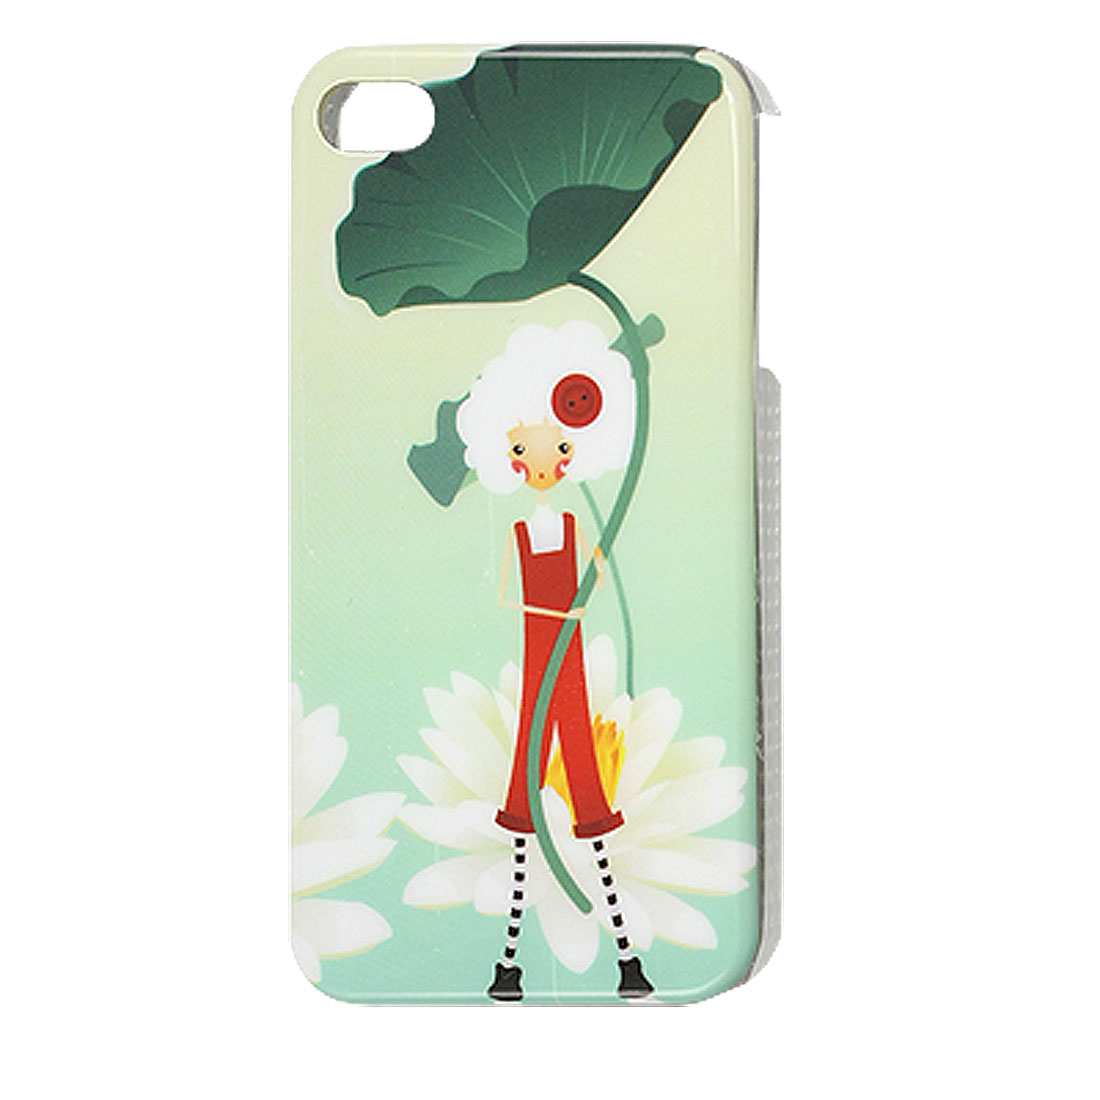 IMD Plastic White Lotus Pale Green IMD Back Shell Cover for iPhone 4 4G 4S